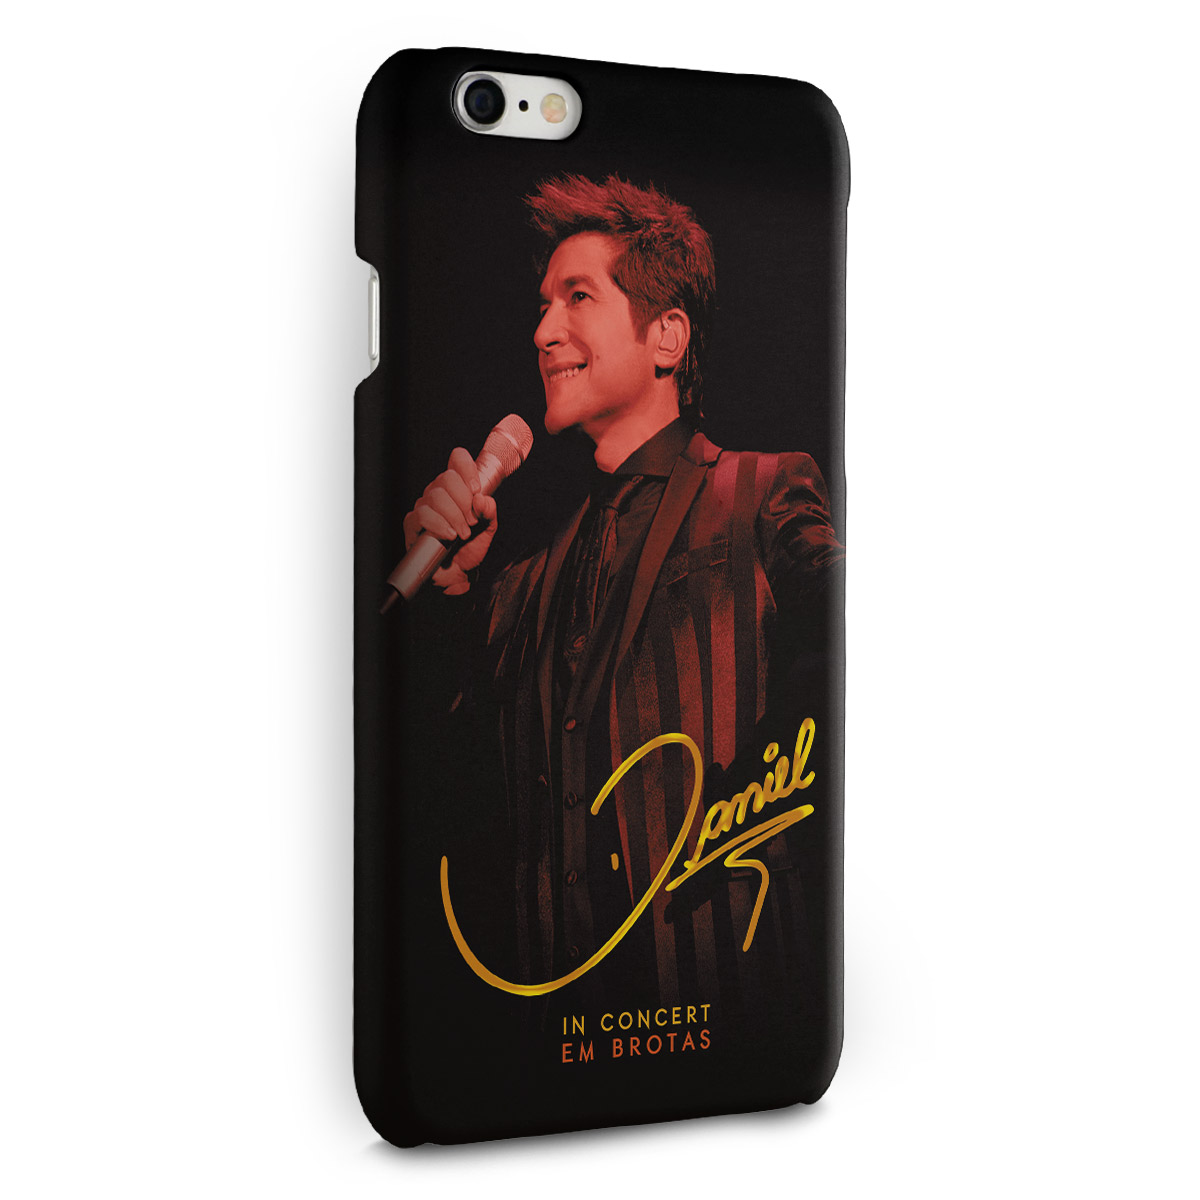 Capa de iPhone 6/6S PLUS Daniel in Concert